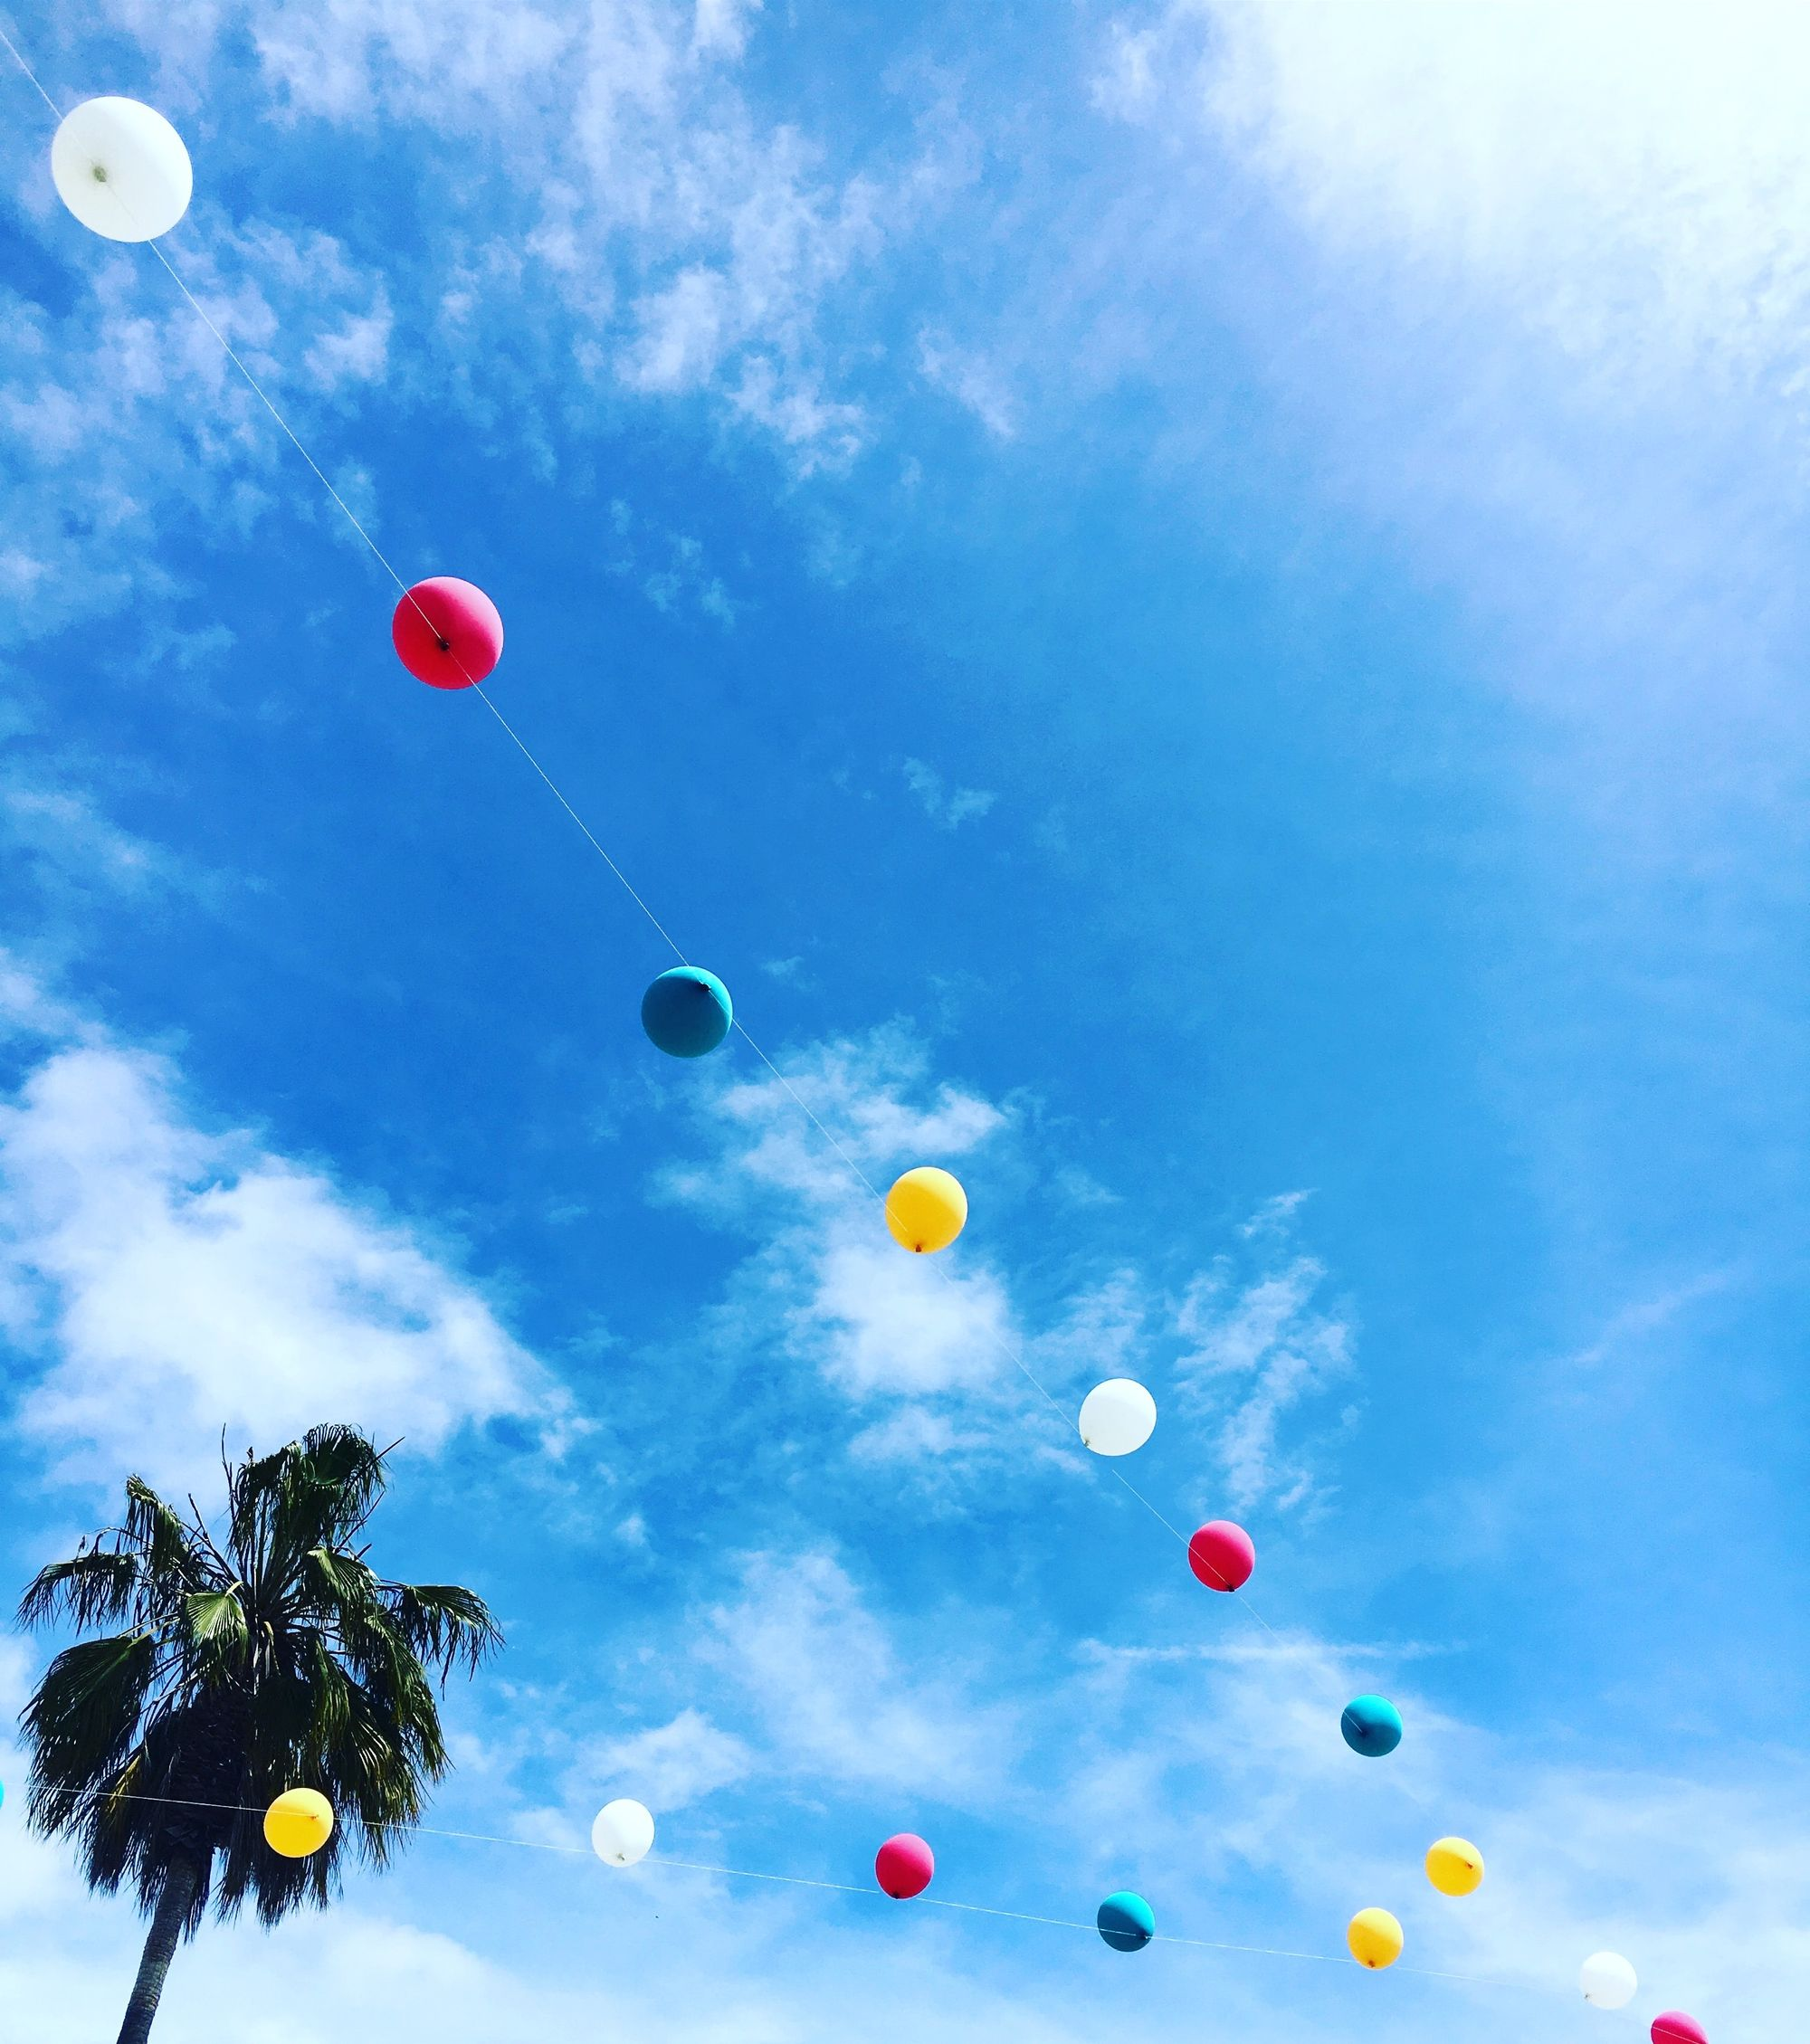 Palm tree and balloons